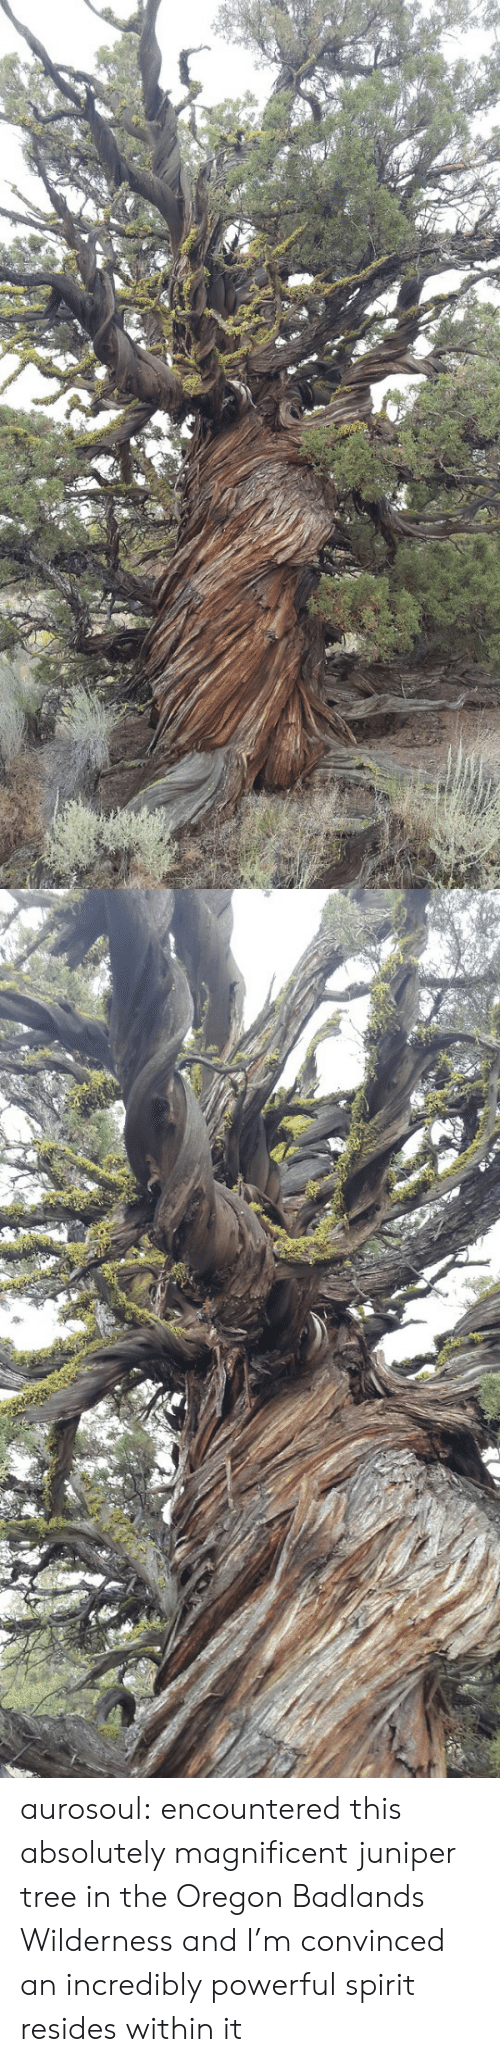 Magnificent: aurosoul: encountered this absolutely magnificent juniper tree in the Oregon Badlands Wilderness and I'm convinced an incredibly powerful spirit resides within it